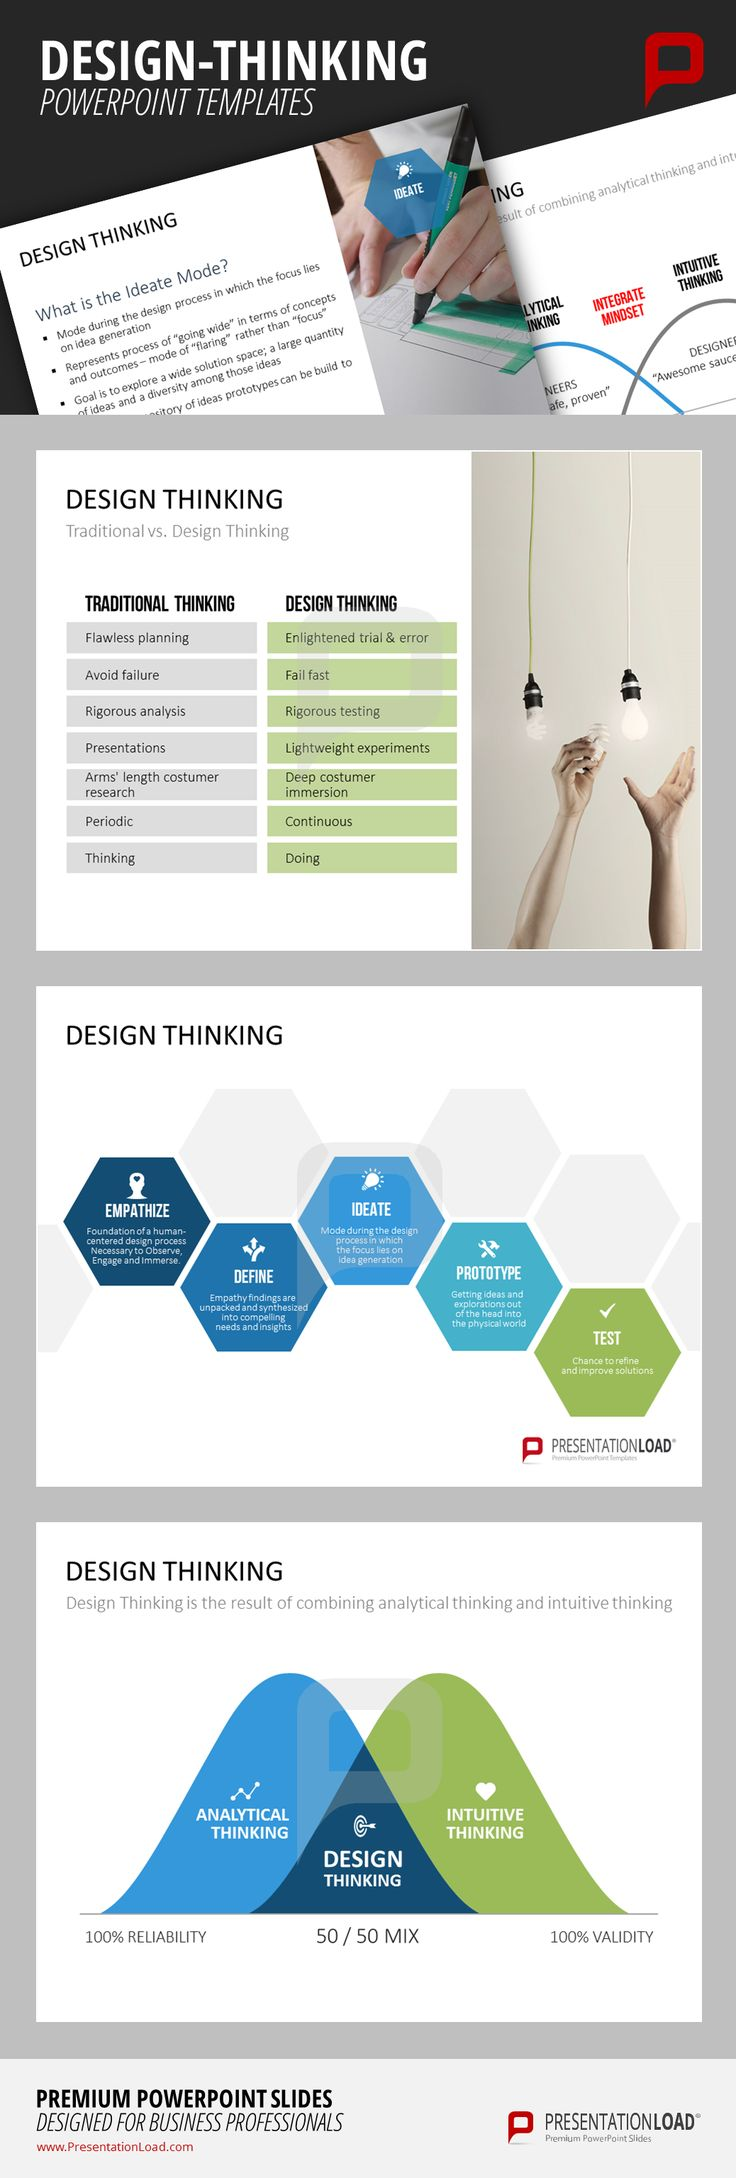 Solve your problems user-oriented and promote creative collaboration in your organization. The design thinking approach is used by a large number of top multinational companies and organizations for t (Top Design Poster)